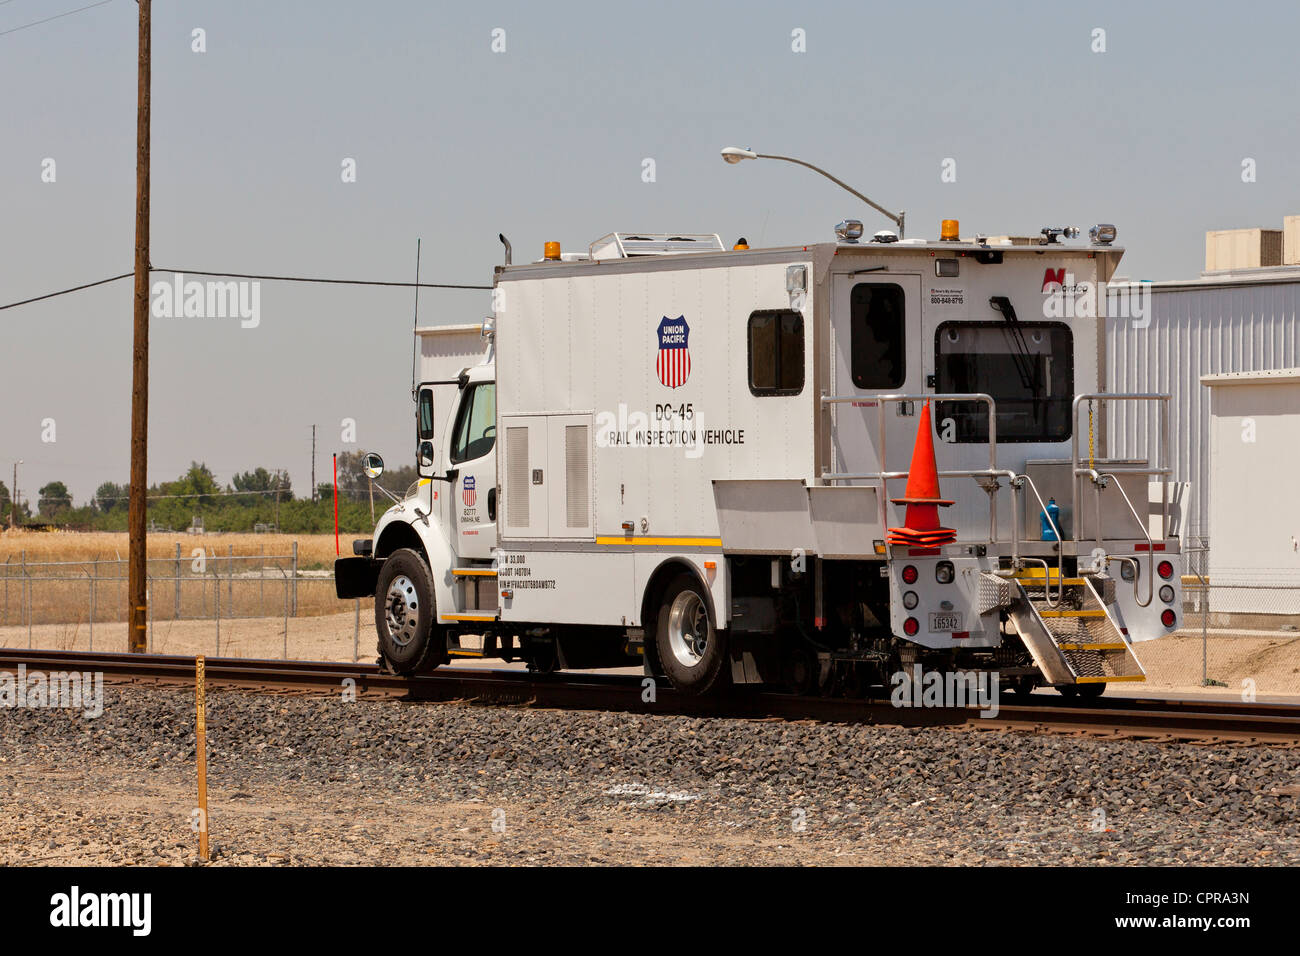 Dc 45 Rail Inspection Vehicle Union Pacific Stock Photo